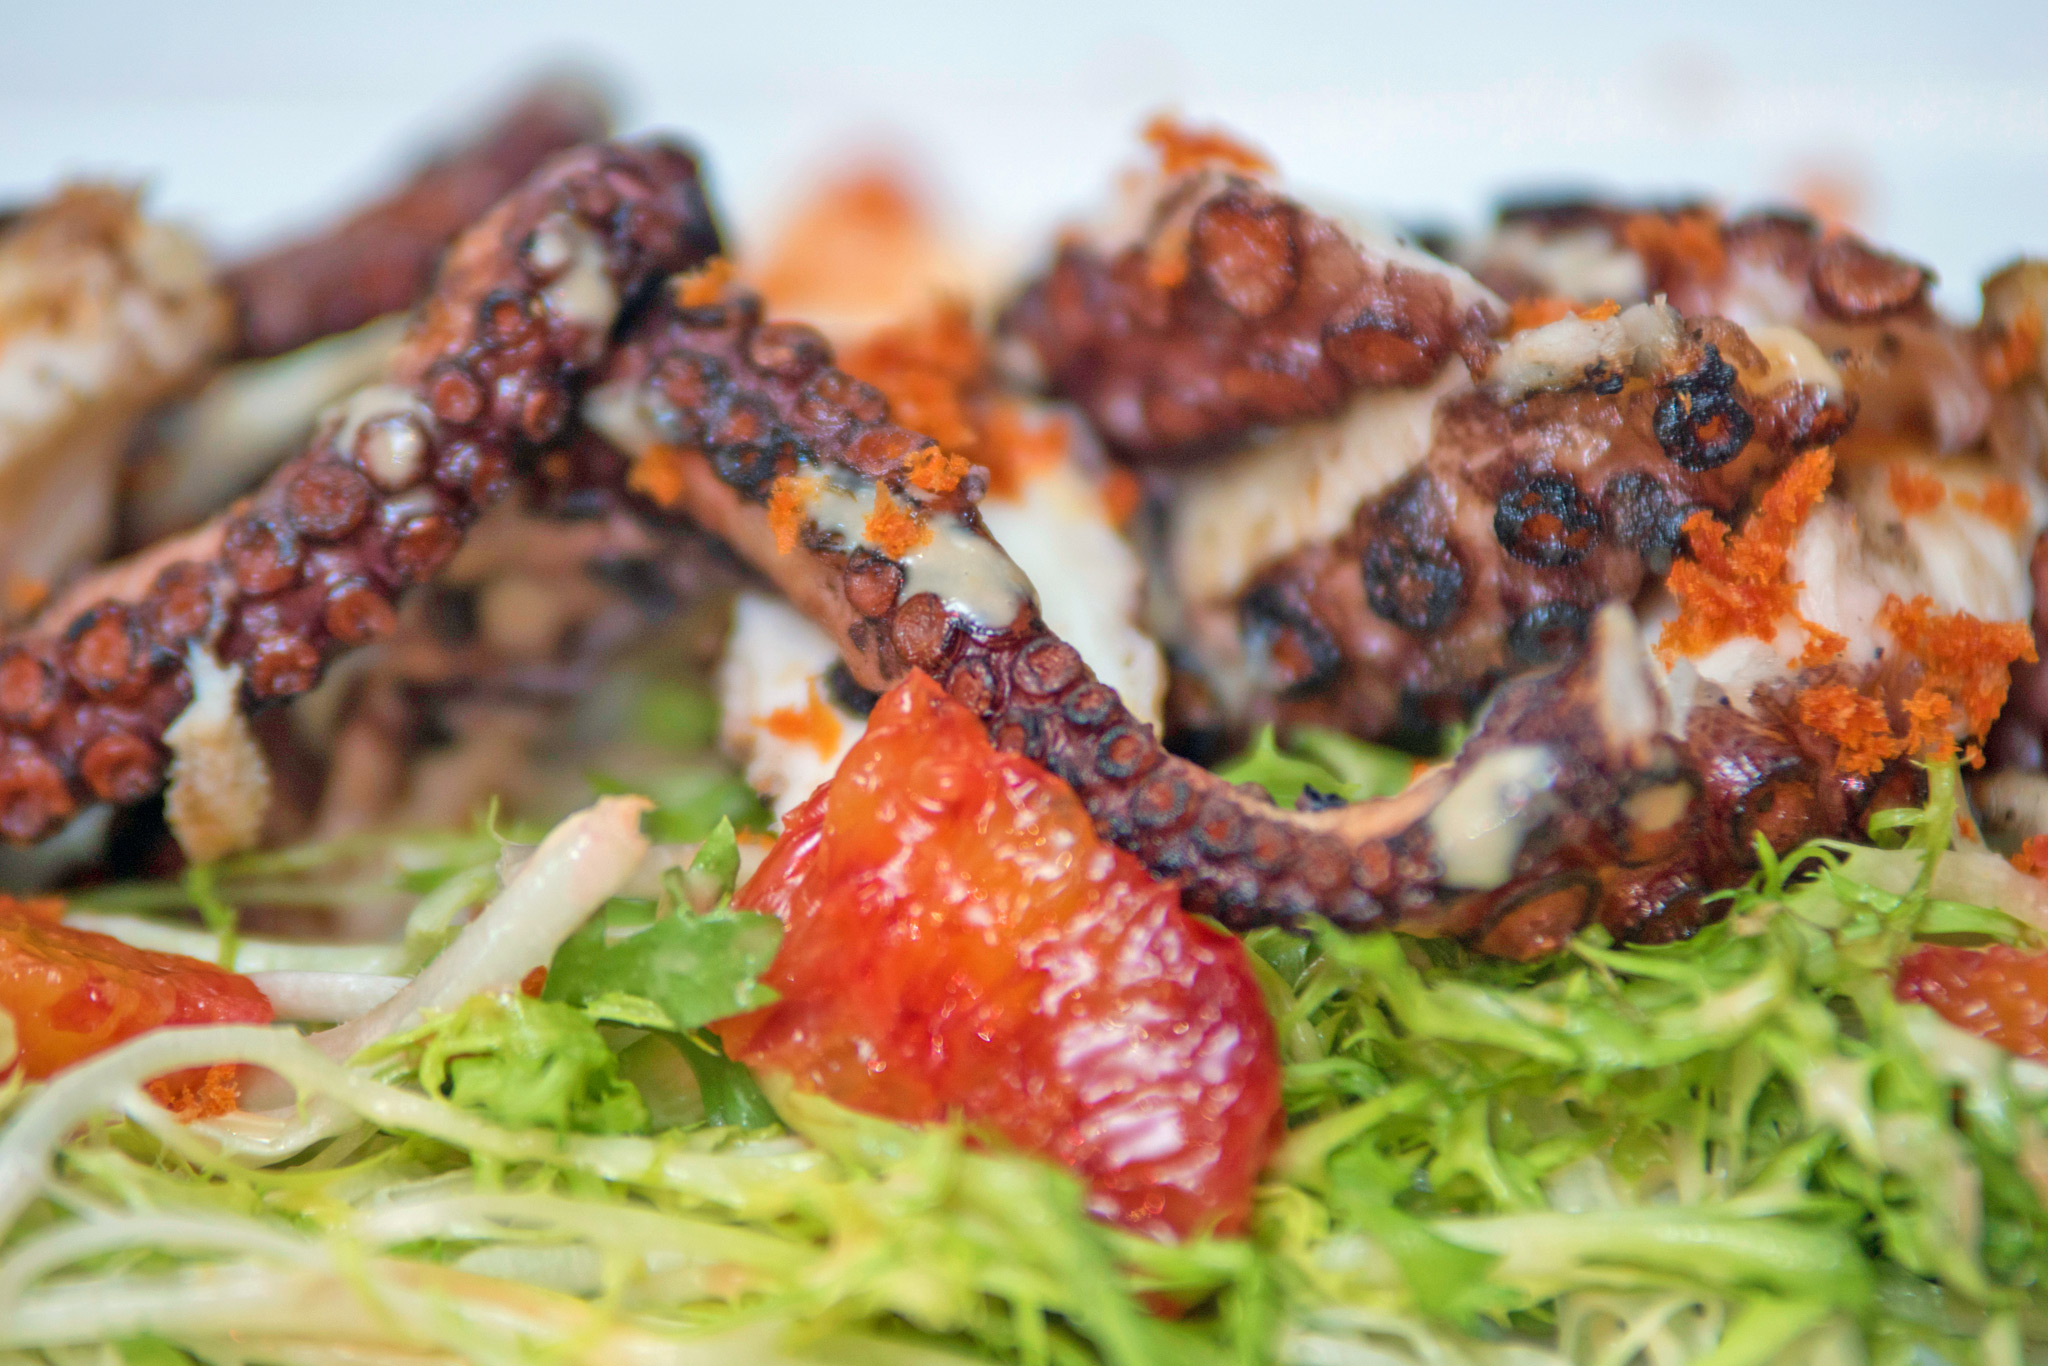 Grilled Octopus - blood orange, grated chorizo, frisee, garlic crema